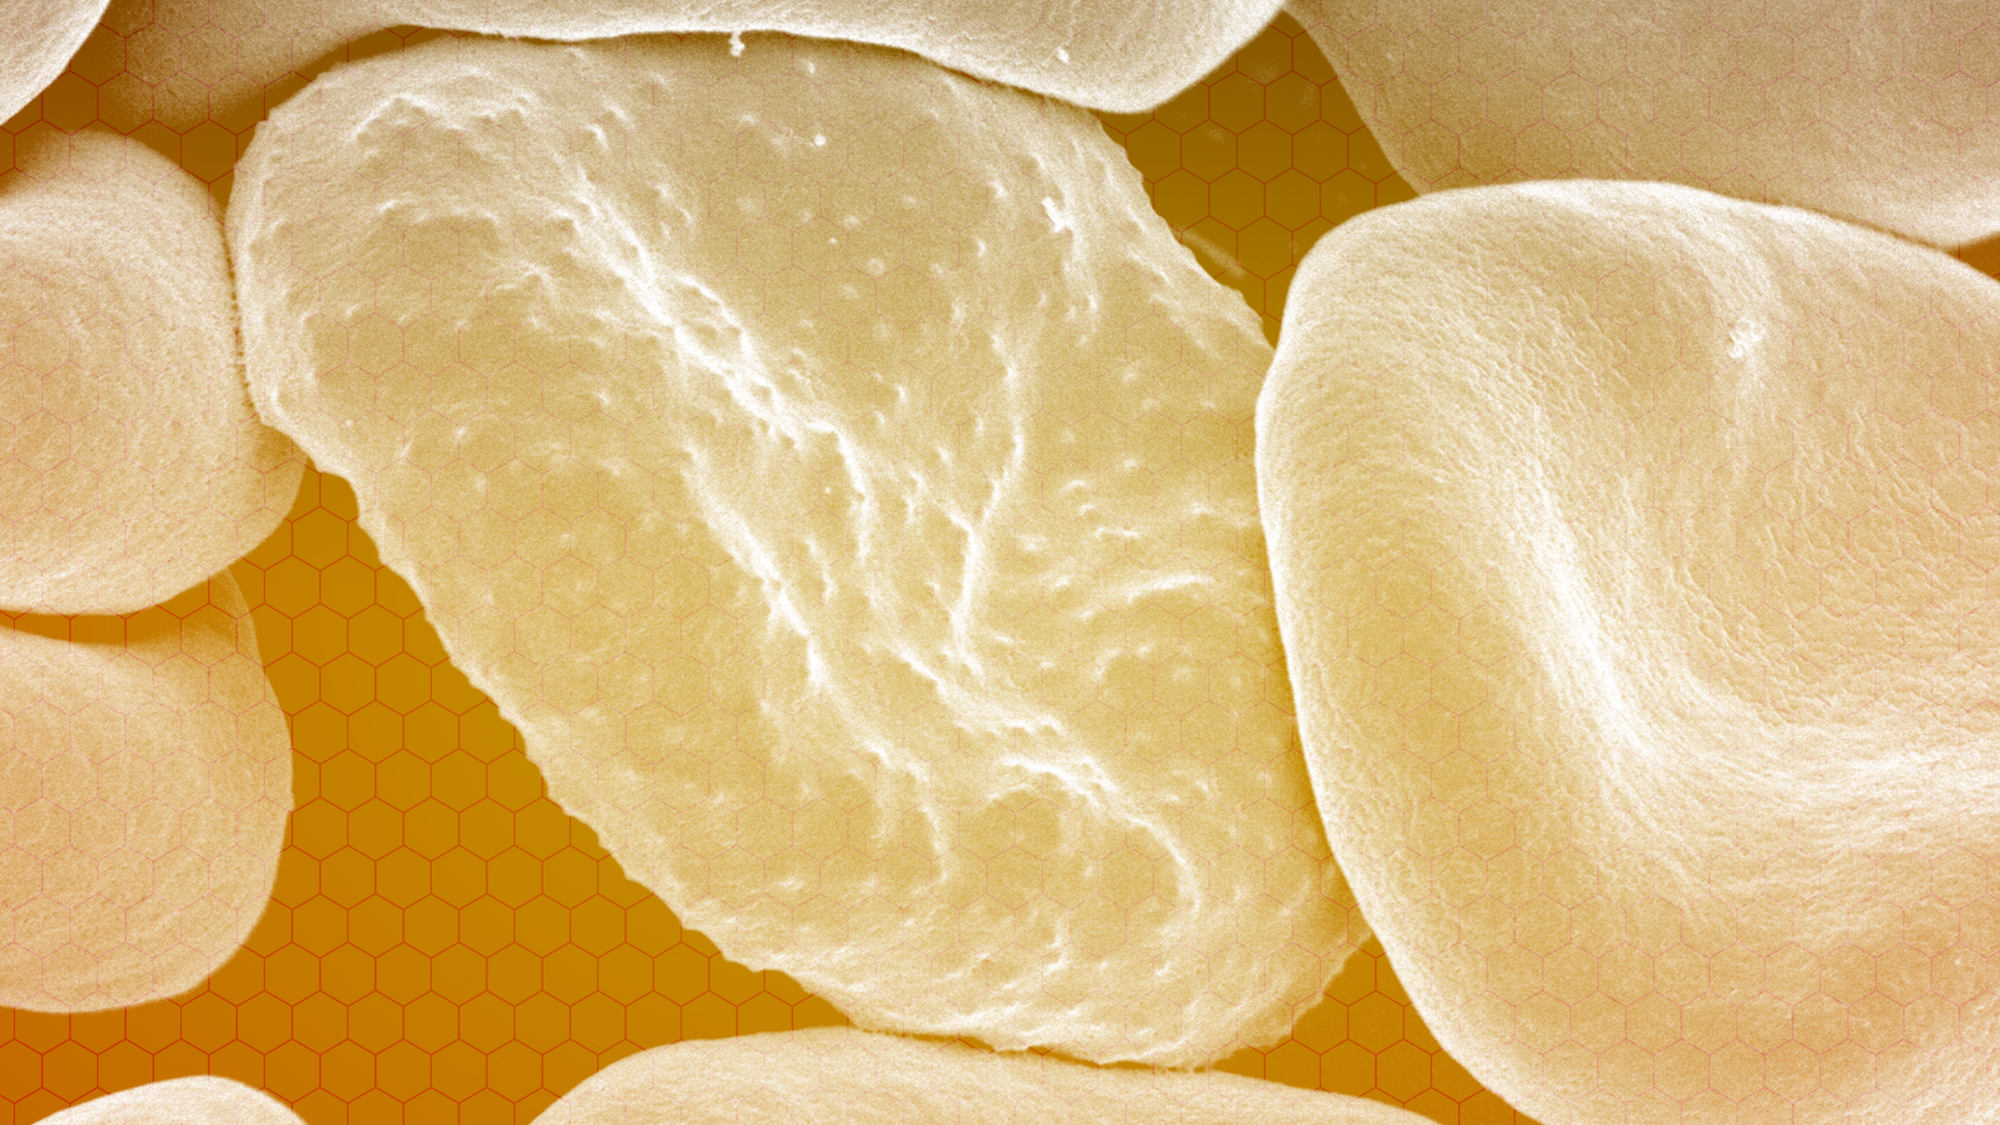 An up-close view of blood cells, with a transparent yellow overlay.